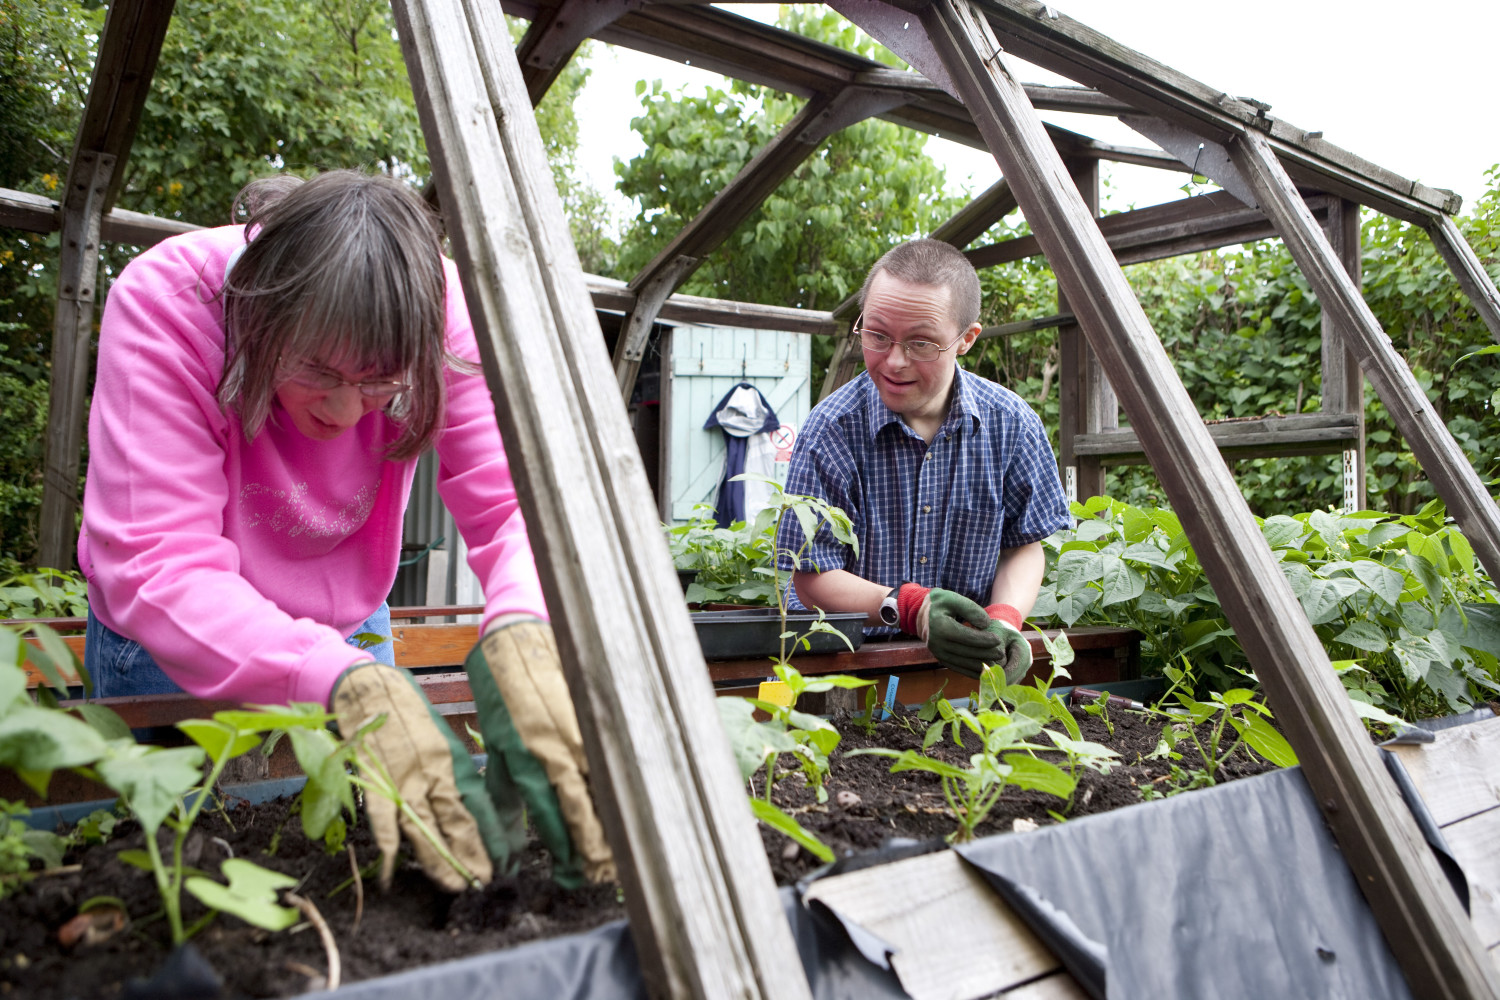 Service User and Support Worker in greenhouse